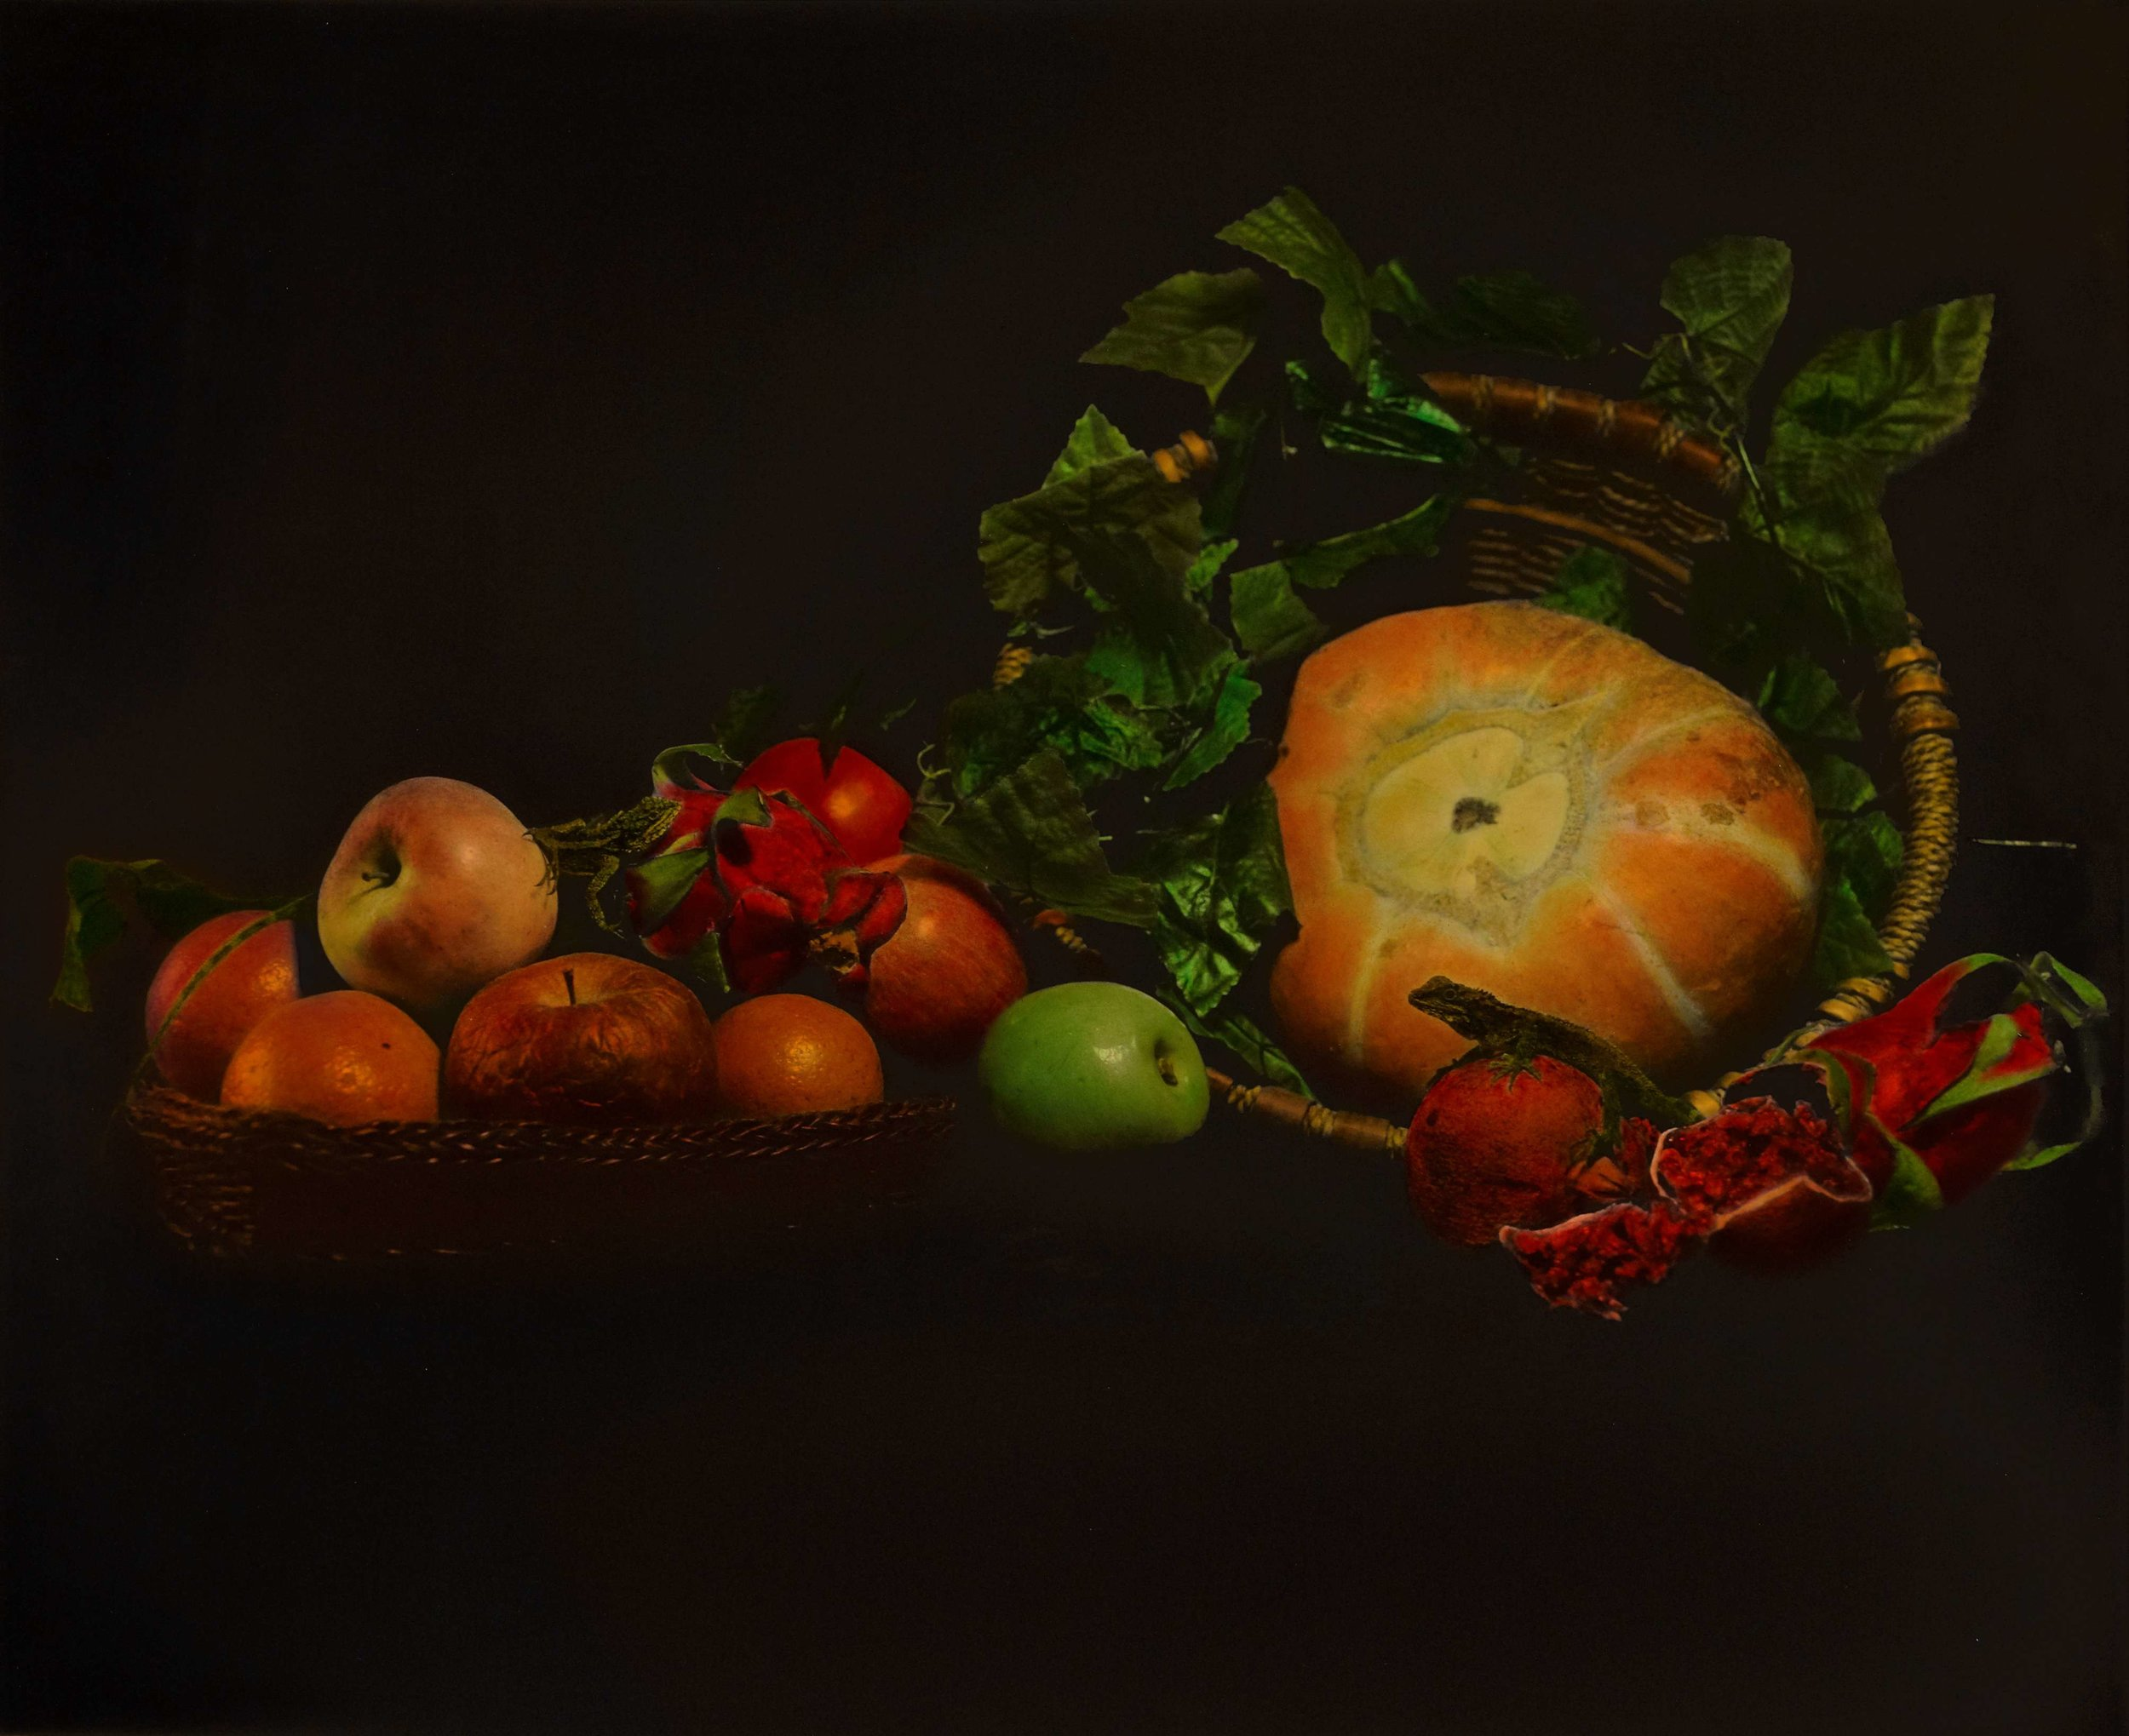 Huang Lei, Still Life 2008 (3-1), hand dyed with oil colour on gelatin silver print 黄磊 静物 2008 (3-1) 63 x 77cm 明胶卤化银黑白照片,手工油彩着色_compressed.jpg